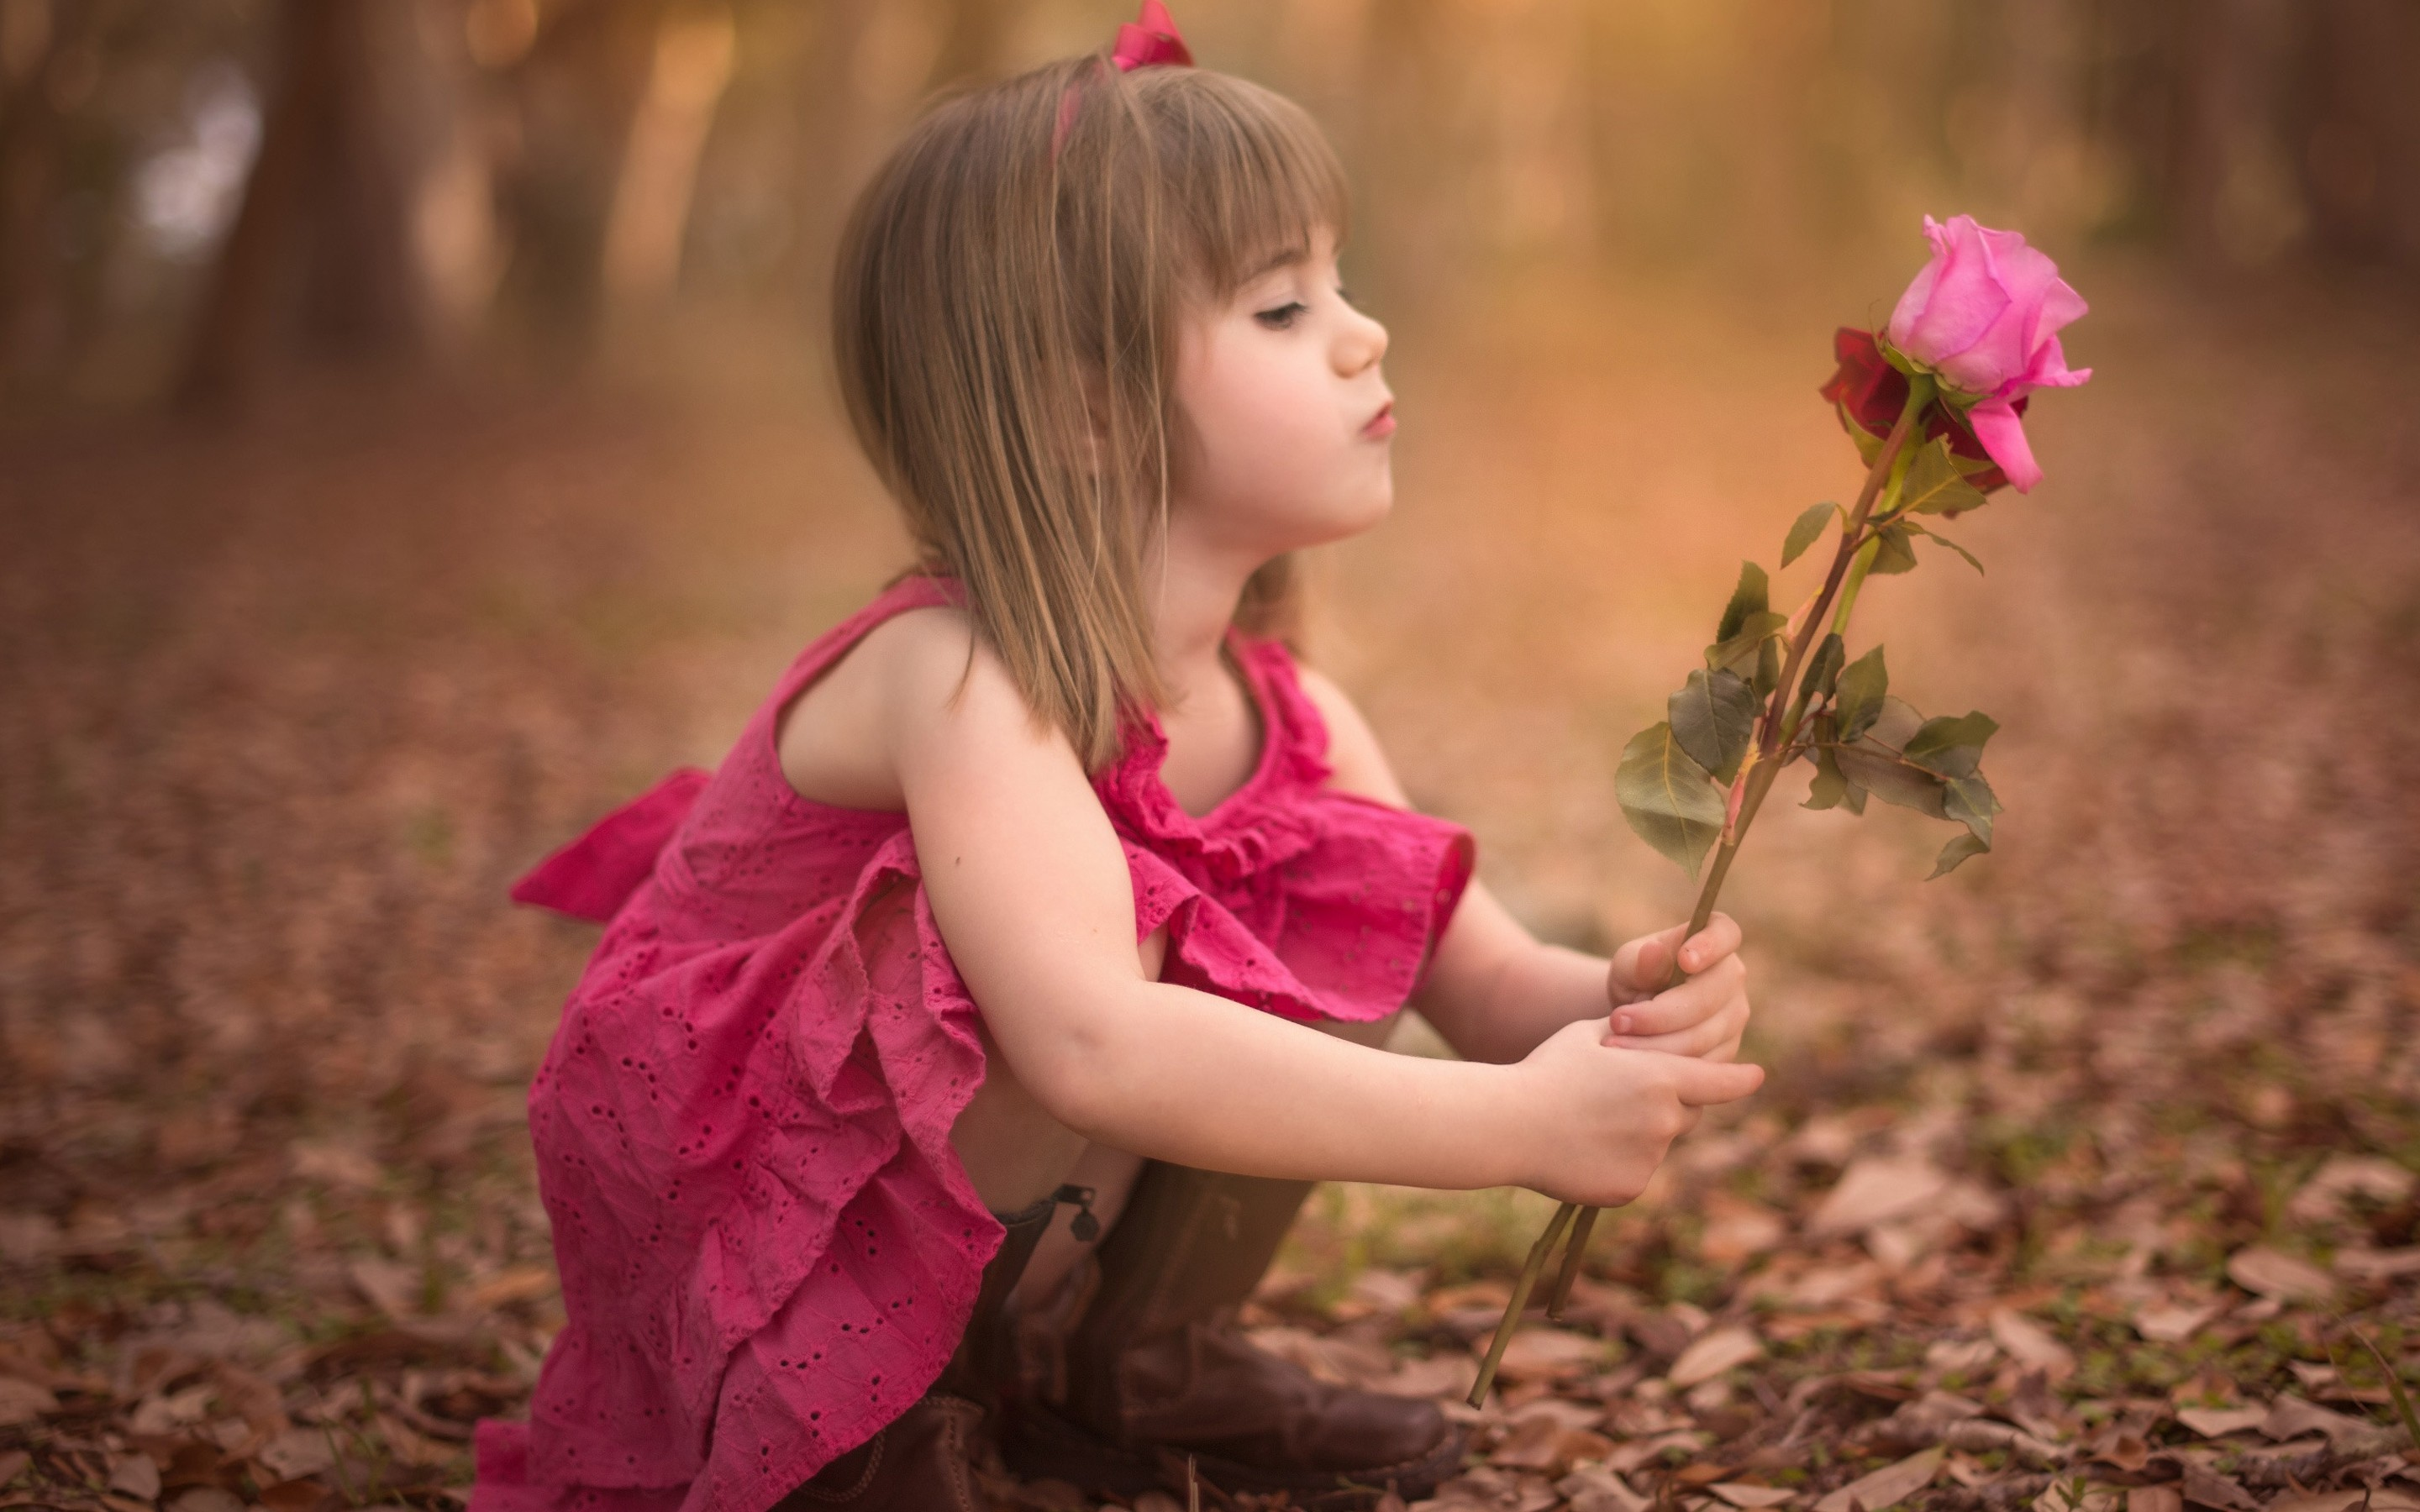 Cute Wallpapers For Girls (62 Wallpapers)